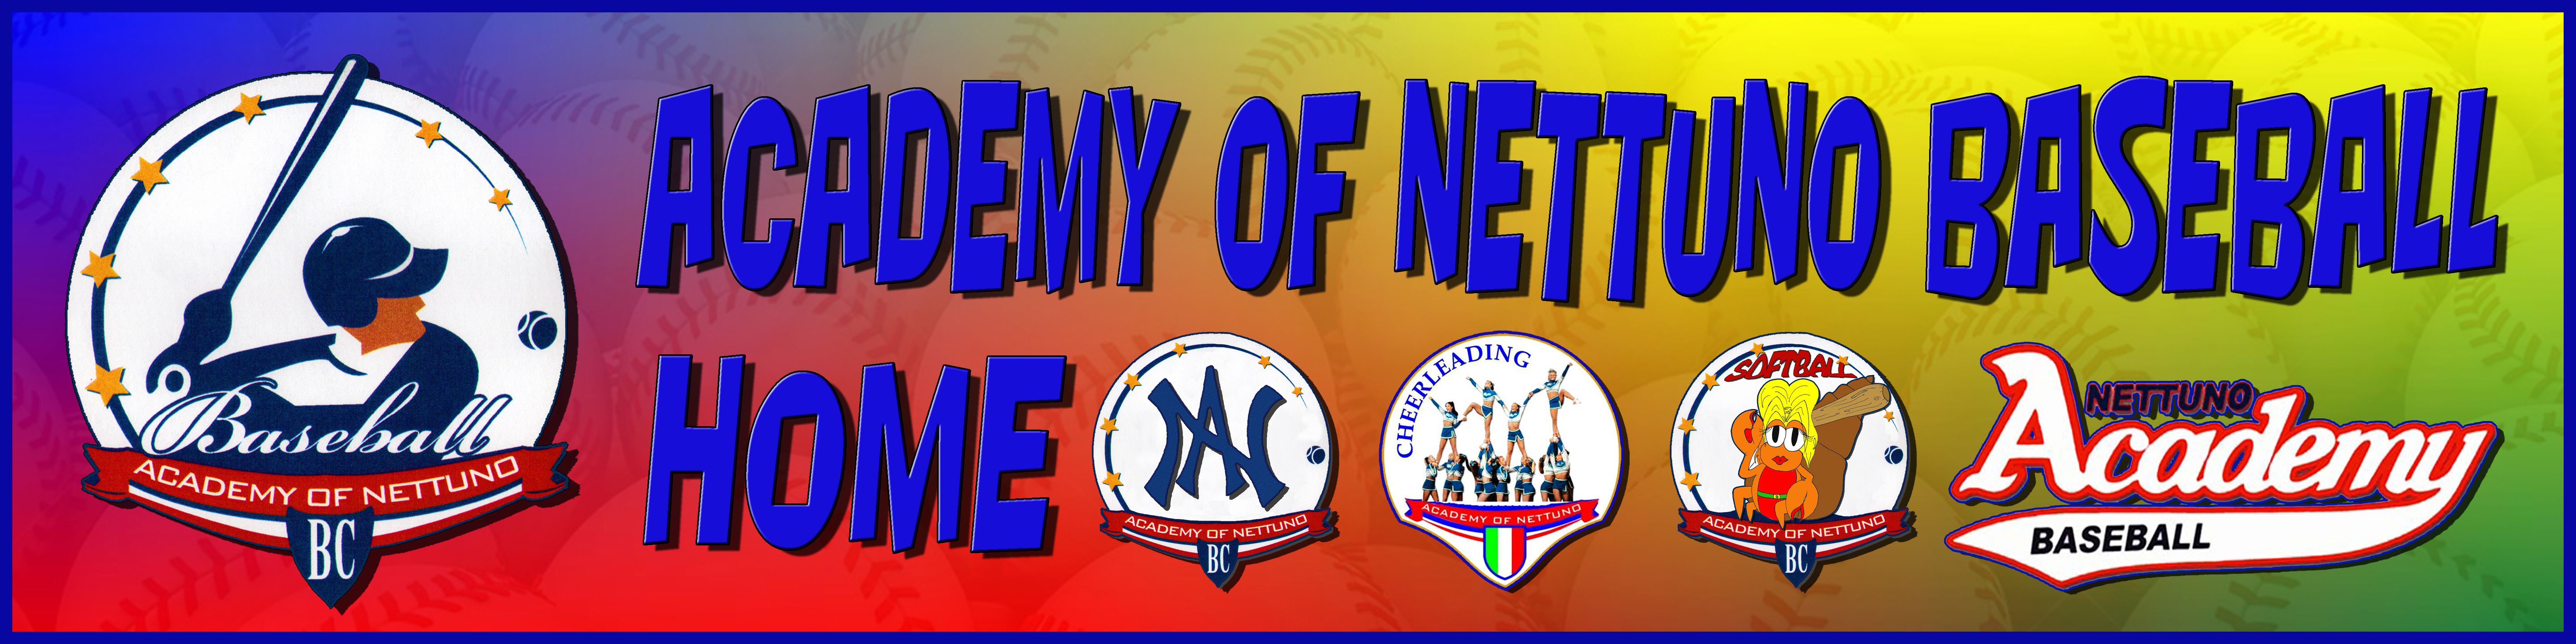 ACADEMY OF NETTUNO BASEBALL